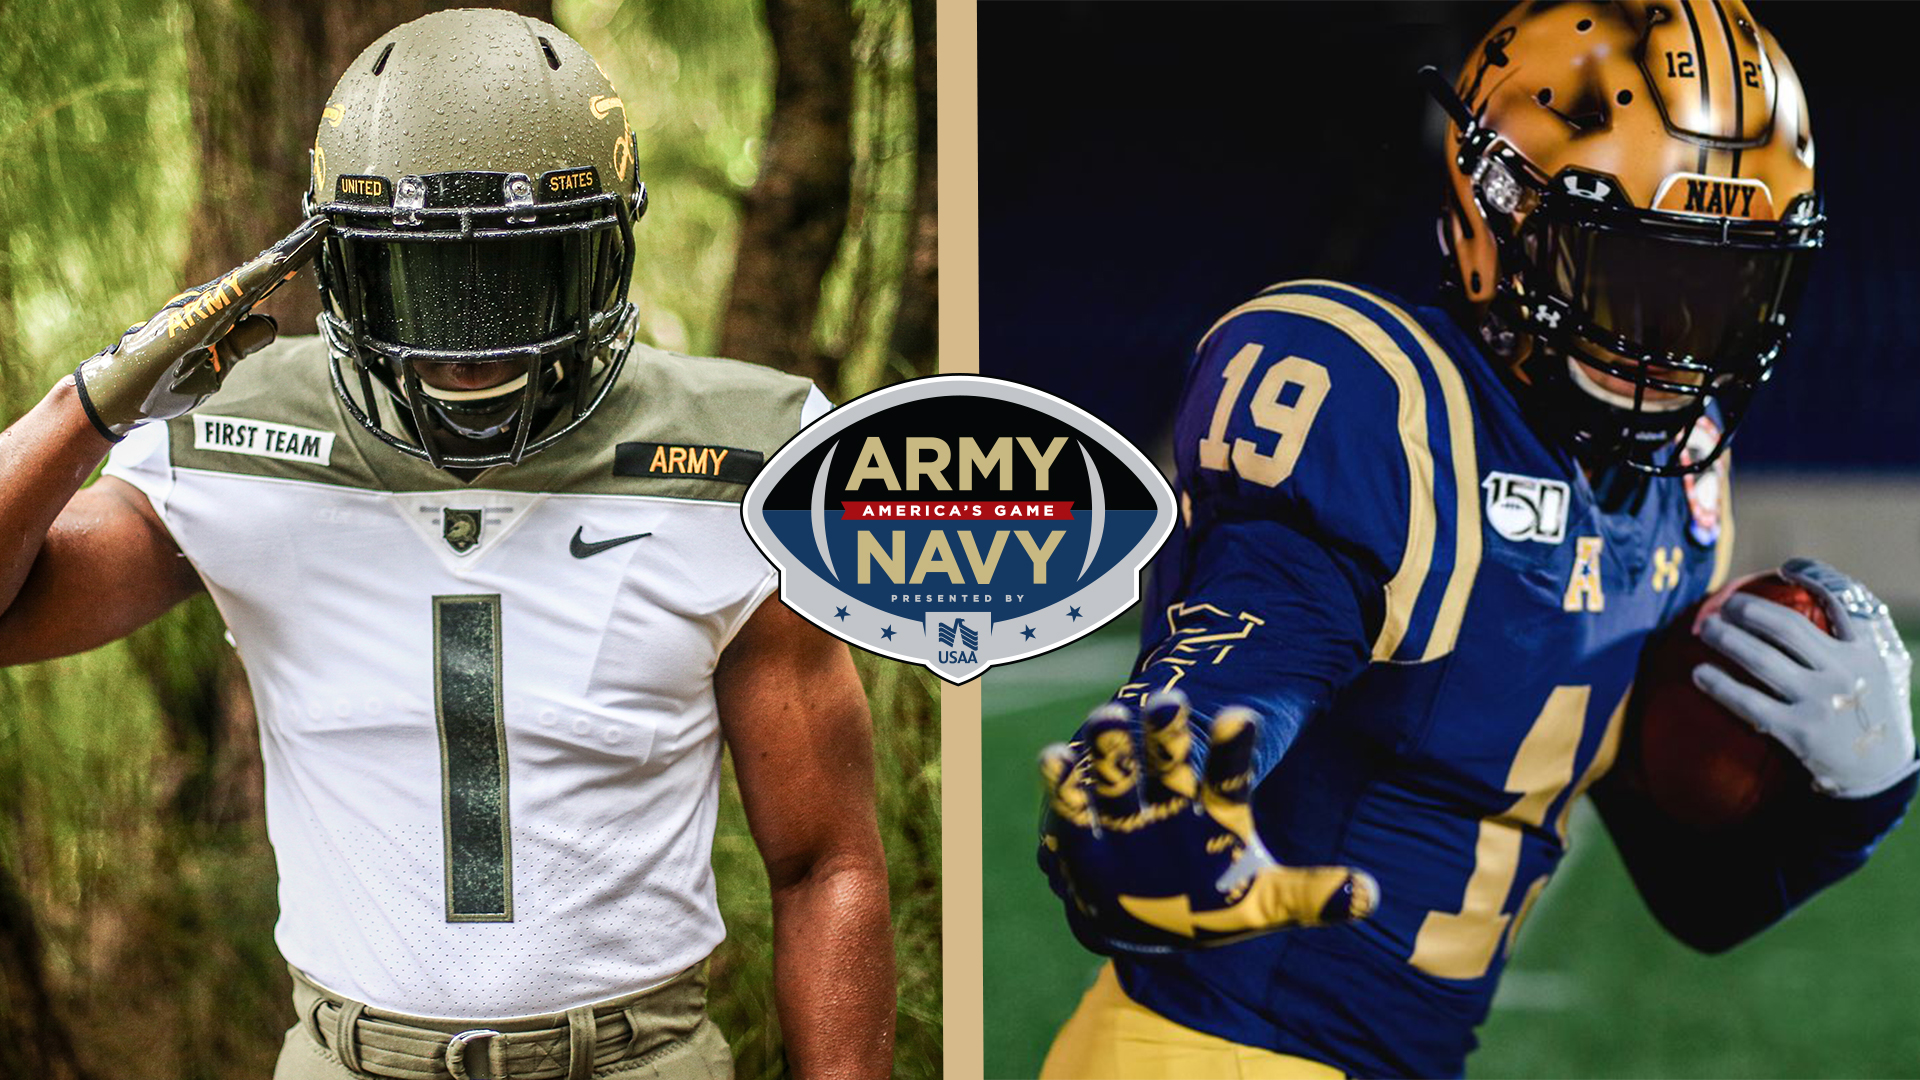 120th Army Navy Game: Preview and Prediction